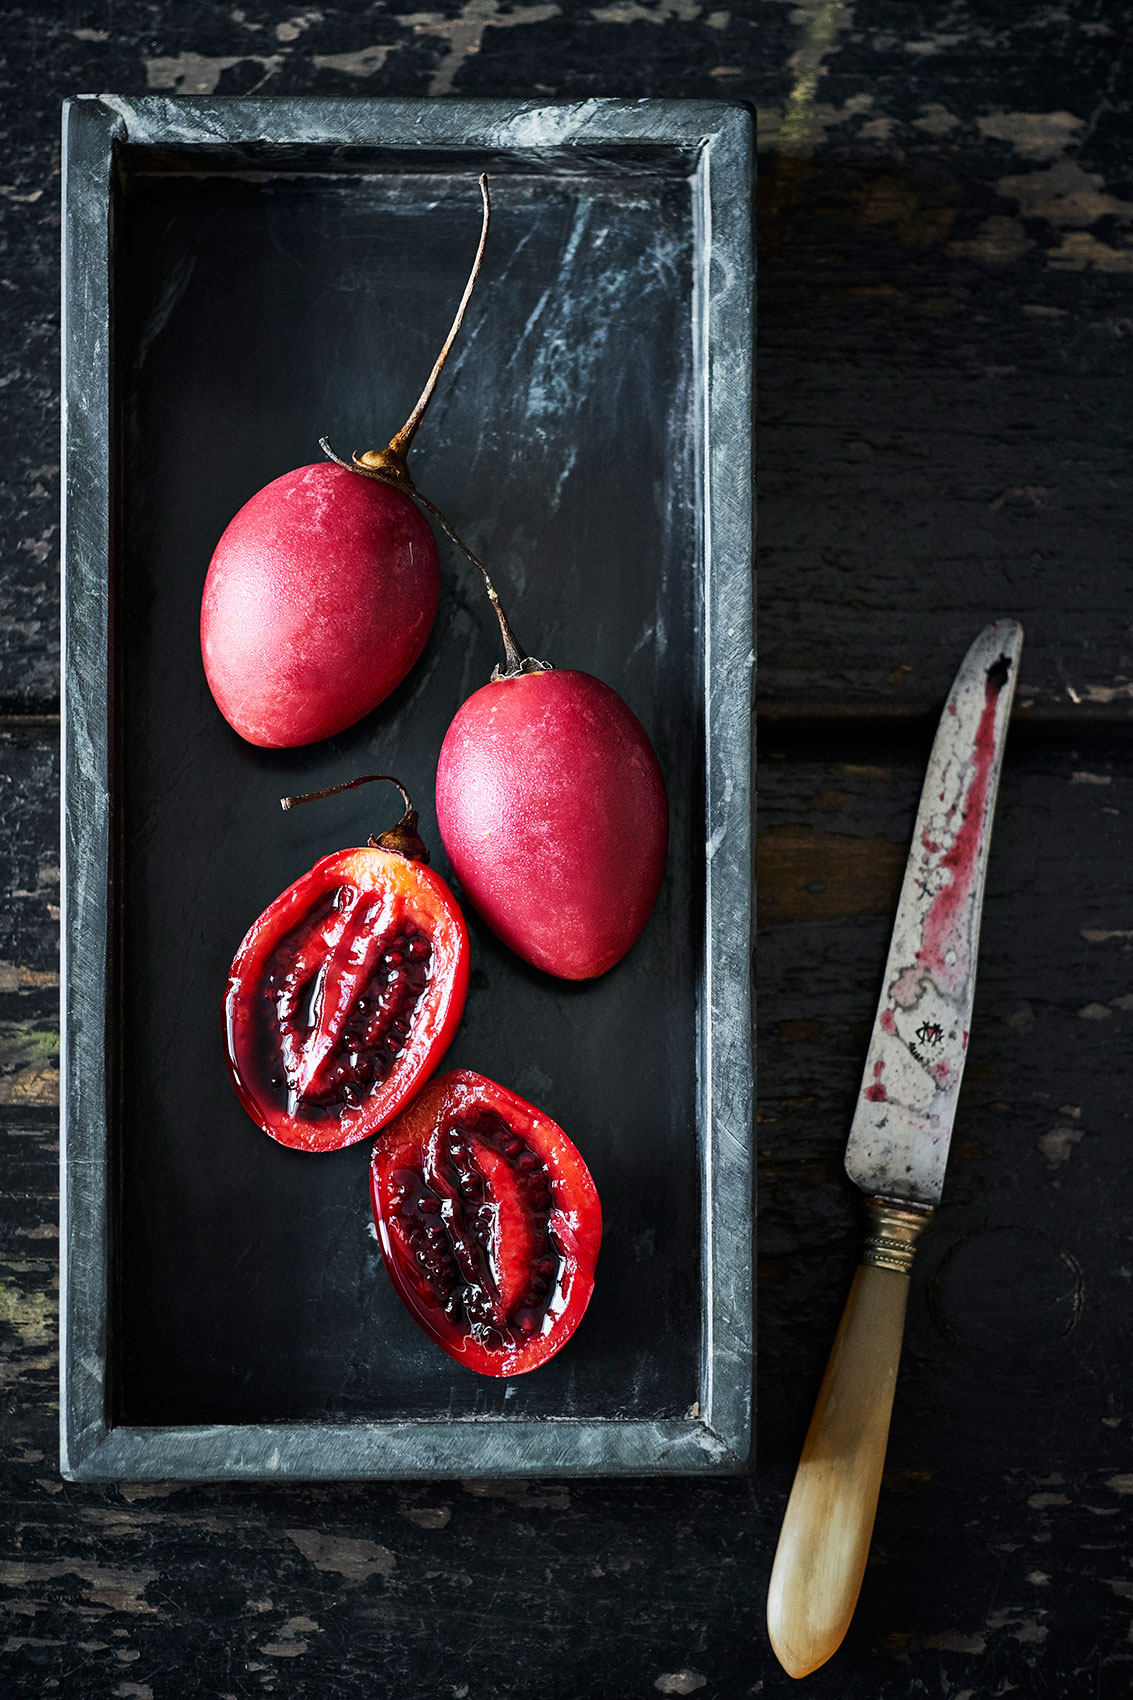 PB_MyIndianKitchen_Incidental_Tamarillo_03